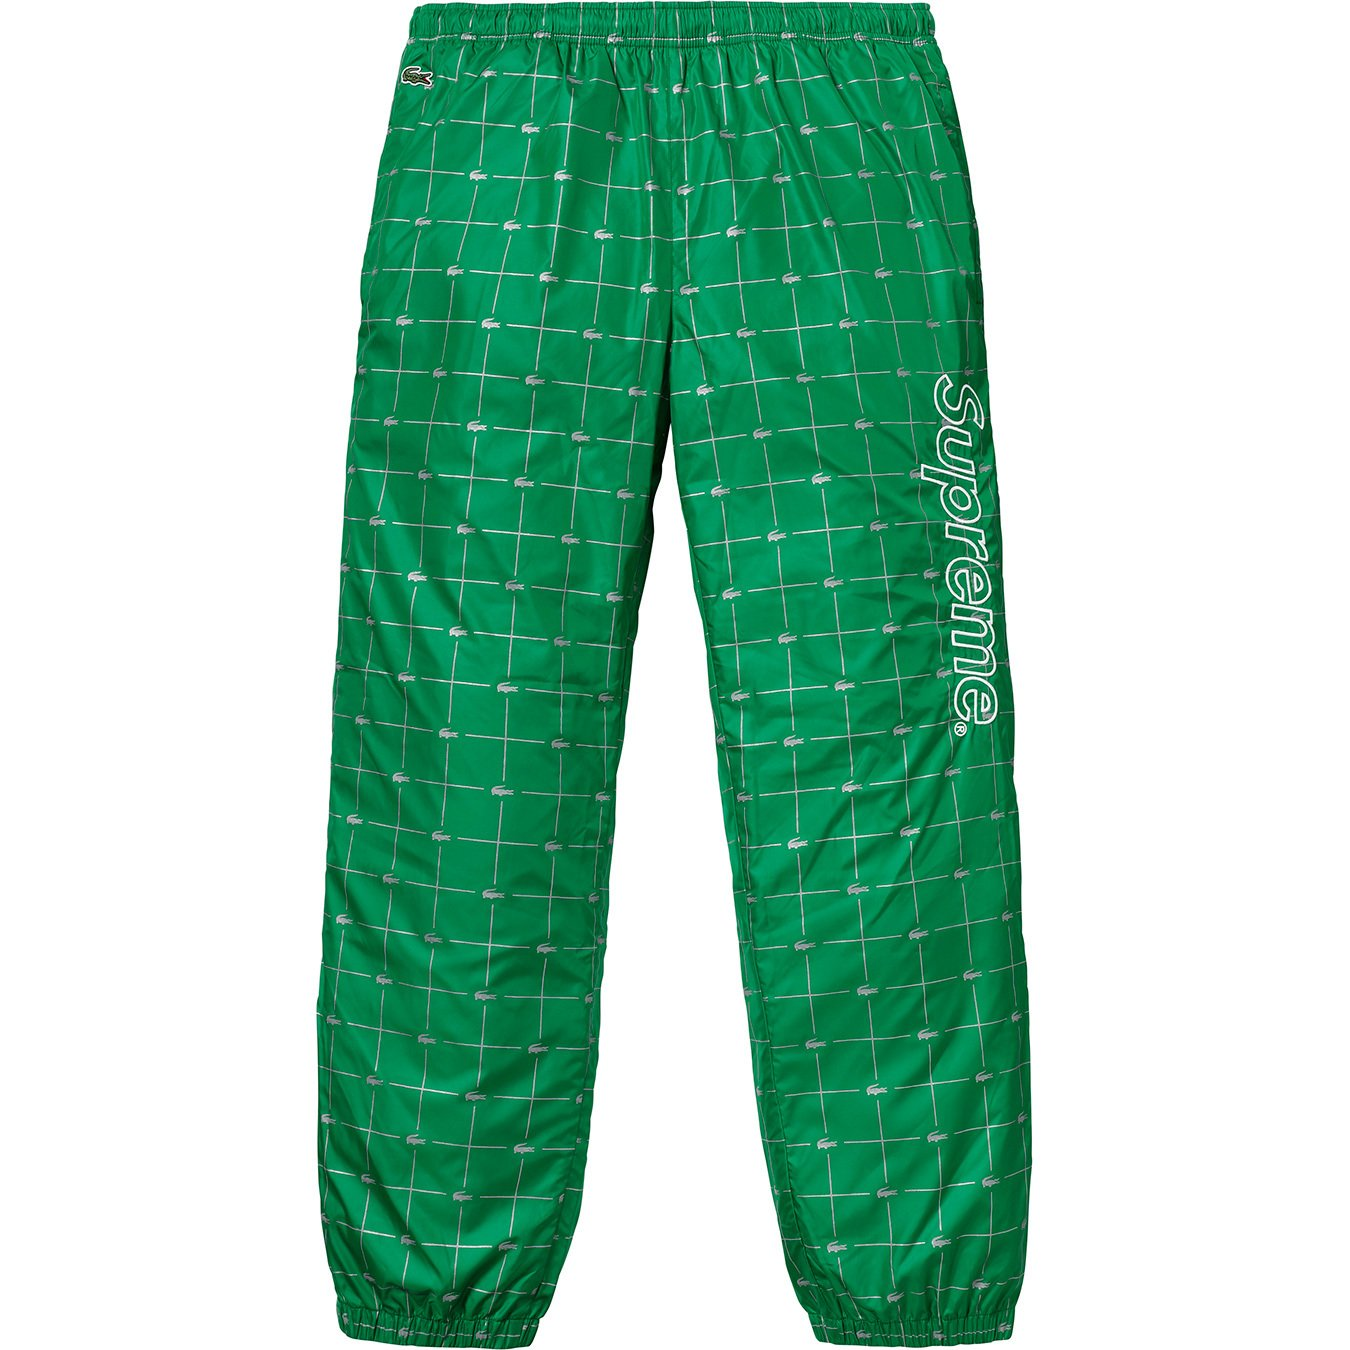 supreme-lacoste-18ss-collaboration-release-201180421-nylon-track-pant